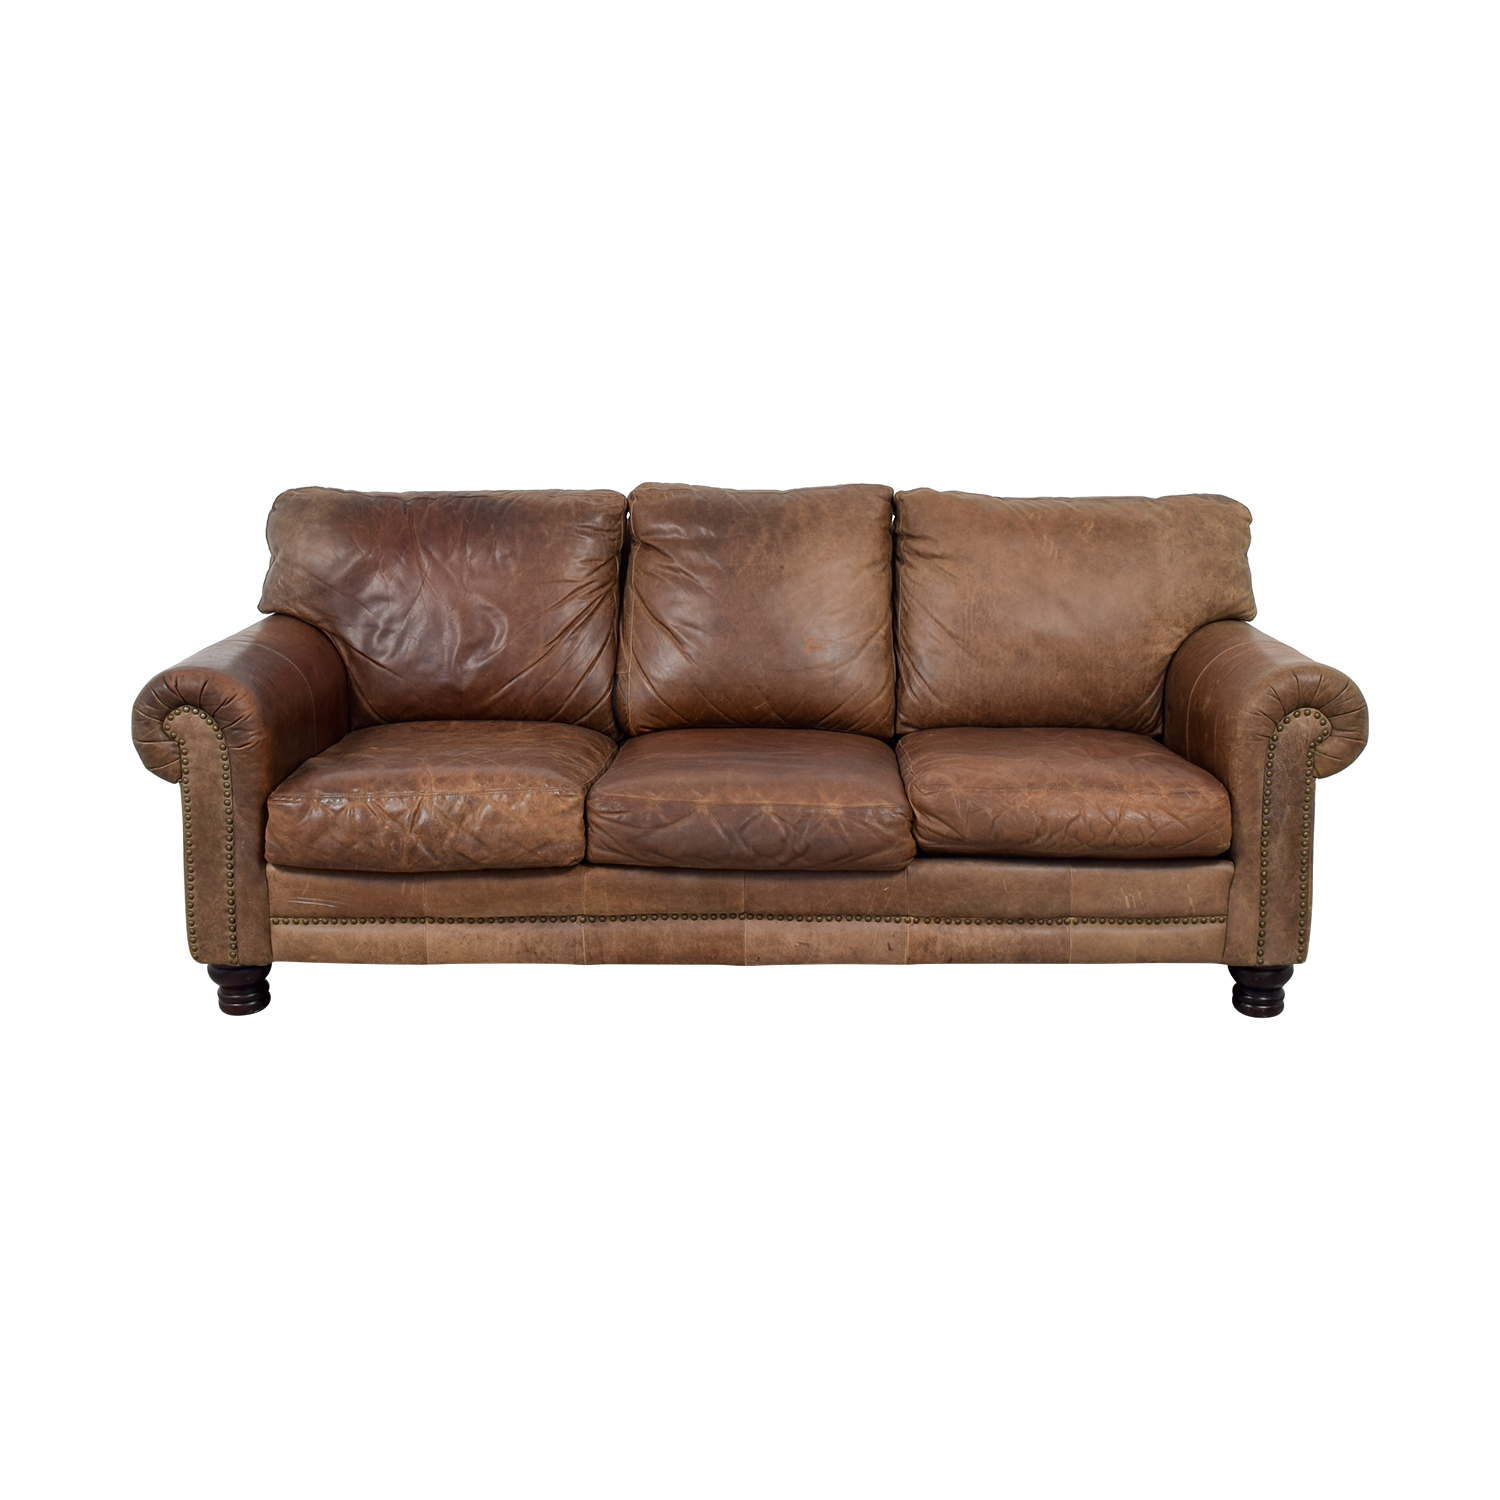 shop La-Z-Boy Three-Cushion Brown Leather Couch La-Z-Boy Sofas